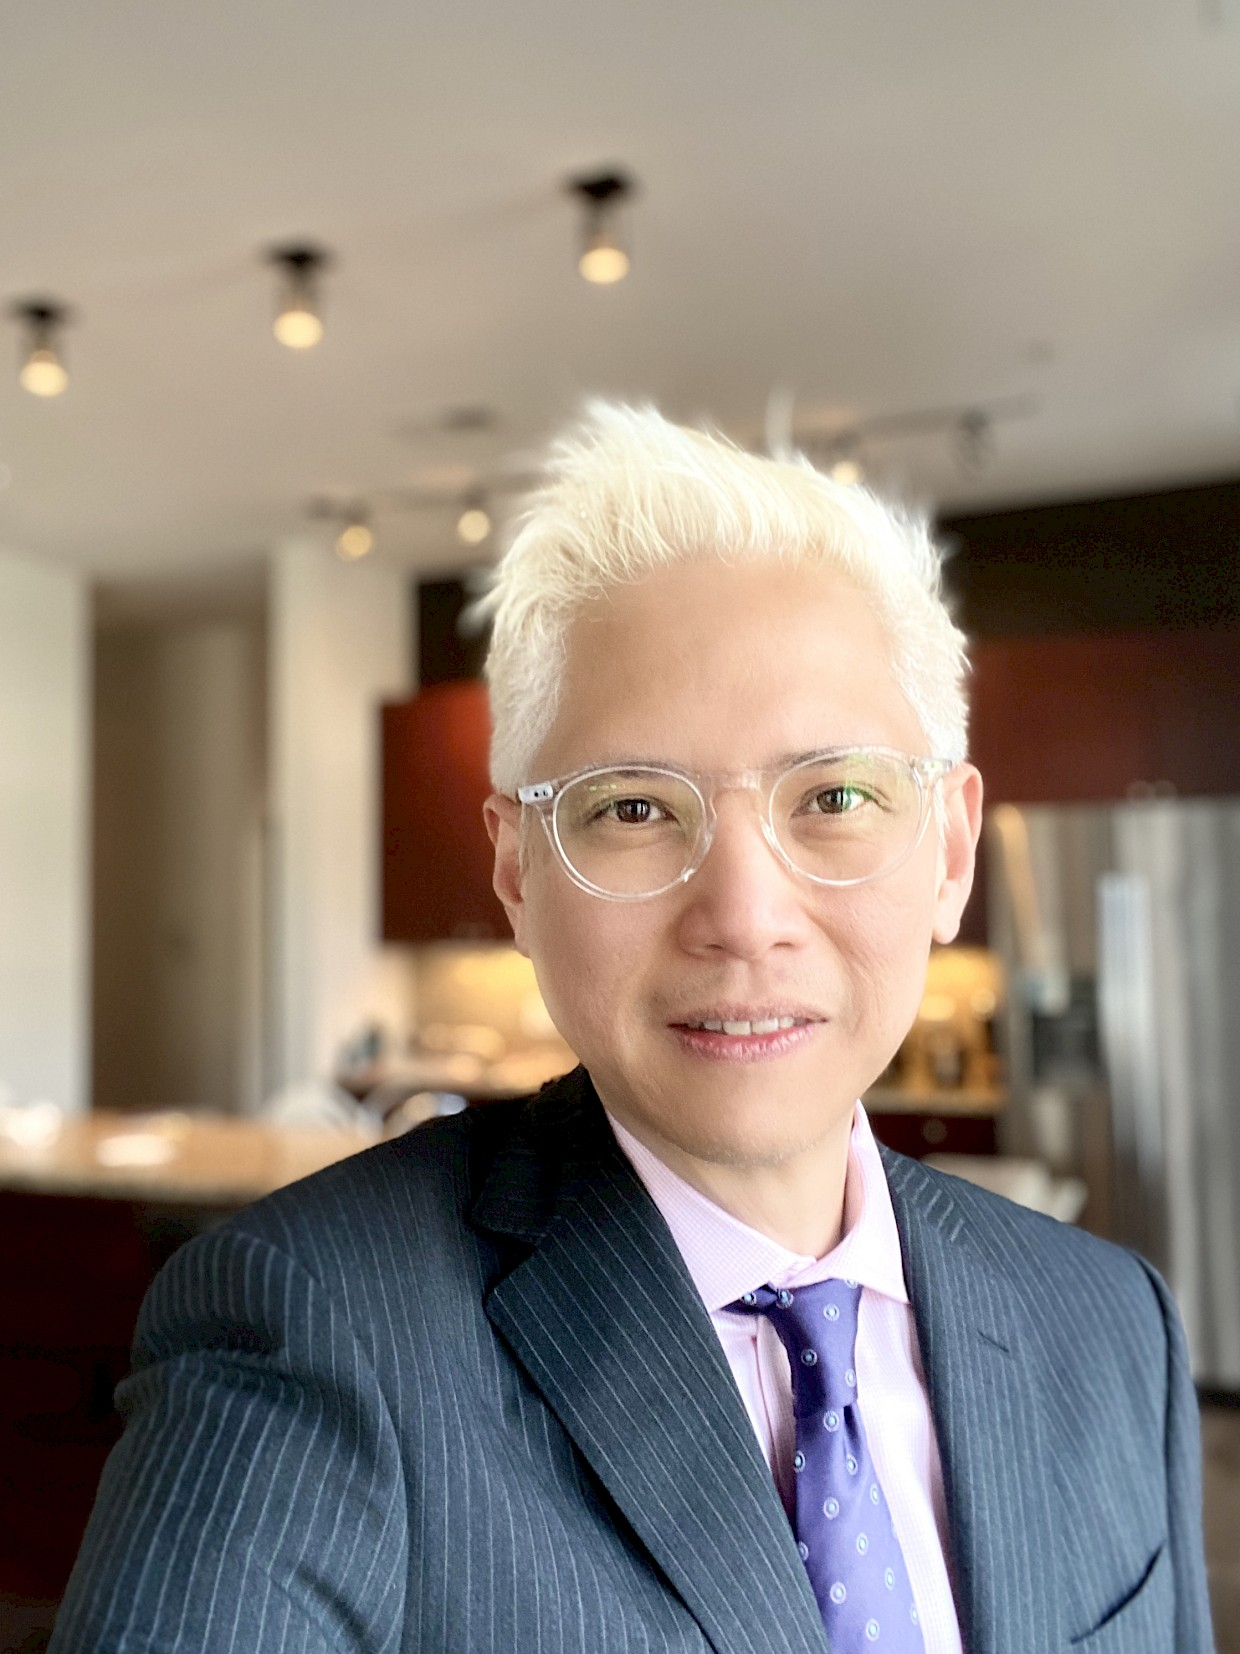 asian man with platinum blonde hair